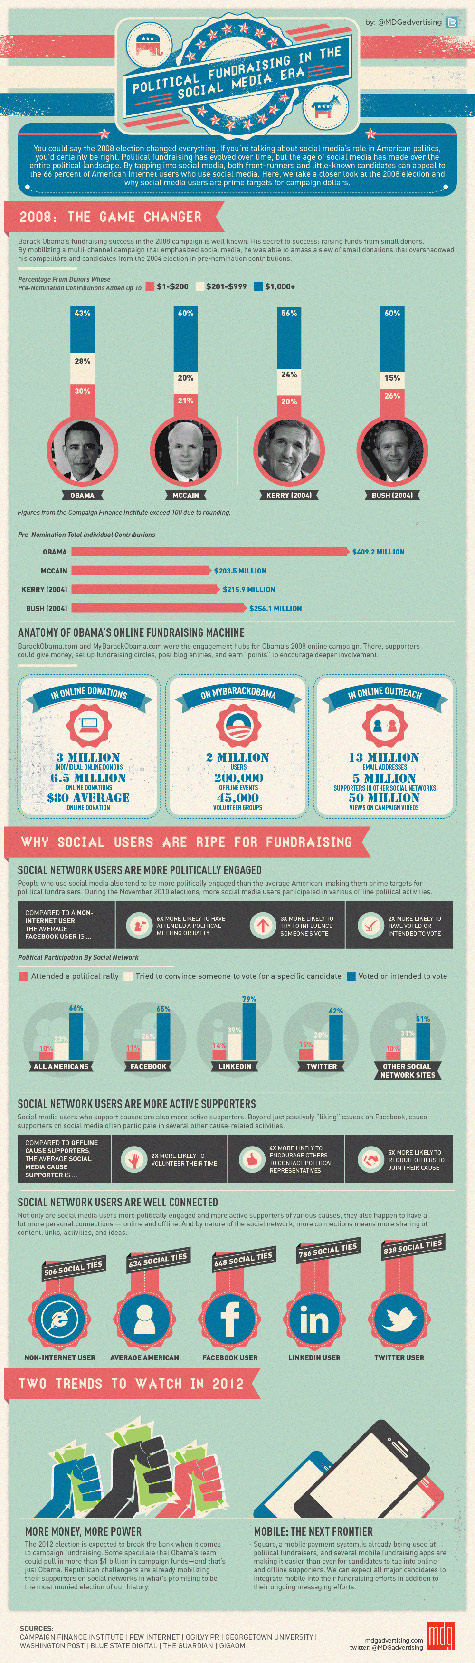 Infographic: Political Fundraising In The Social Media Era